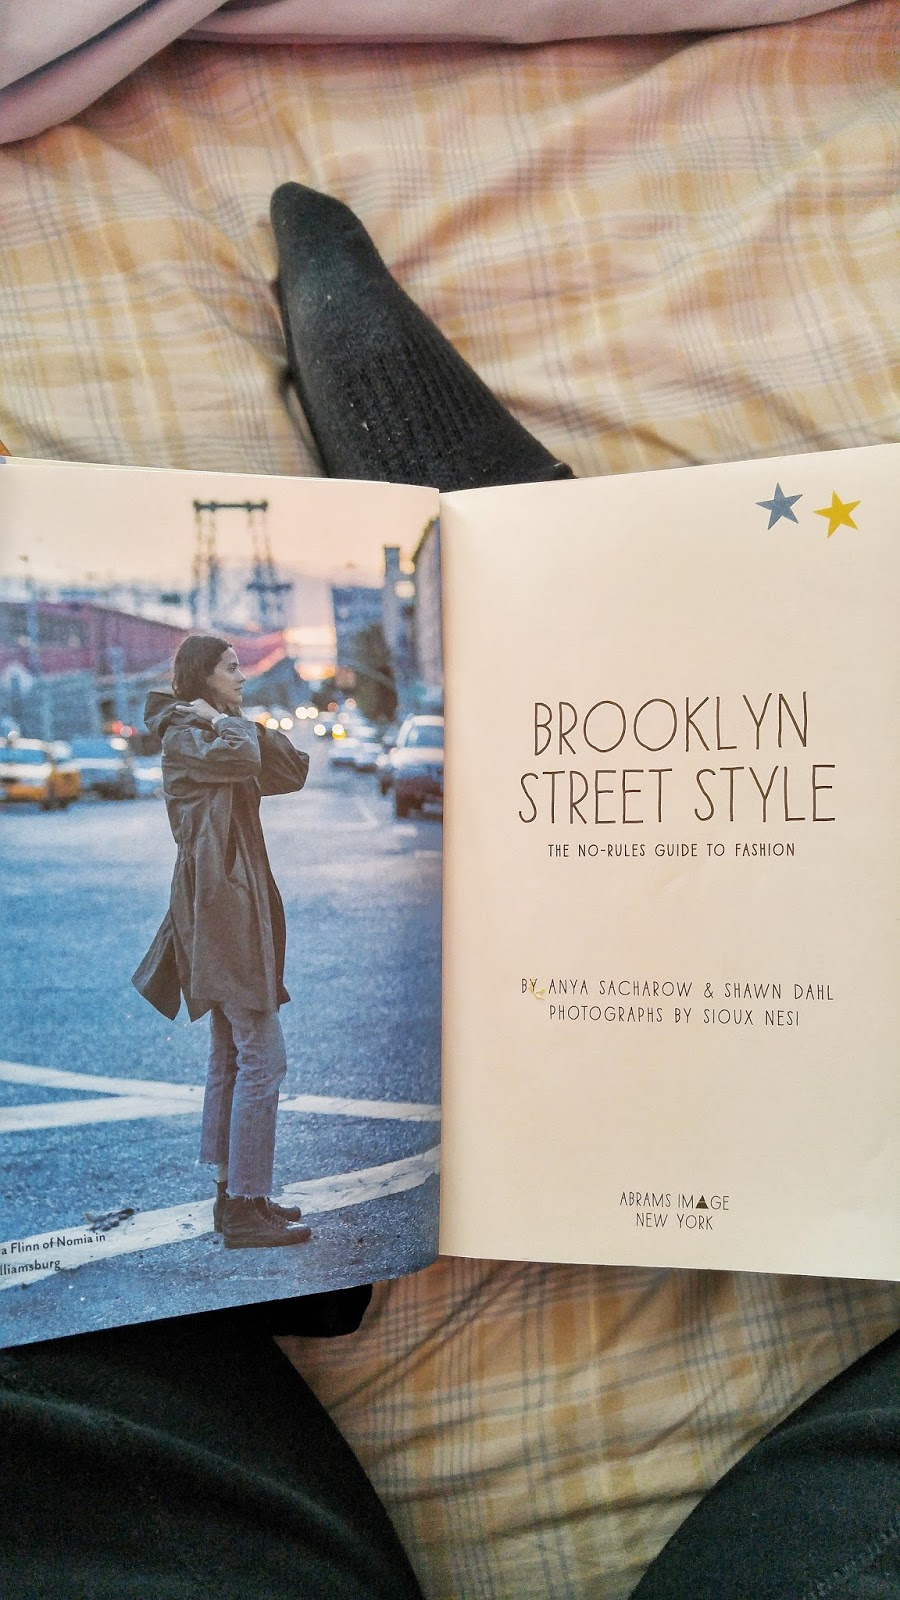 #MsBookworm: Brooklyn Street Style: The No-Rules Guide to Fashion by Anya Sacharow and Shawn Dahl